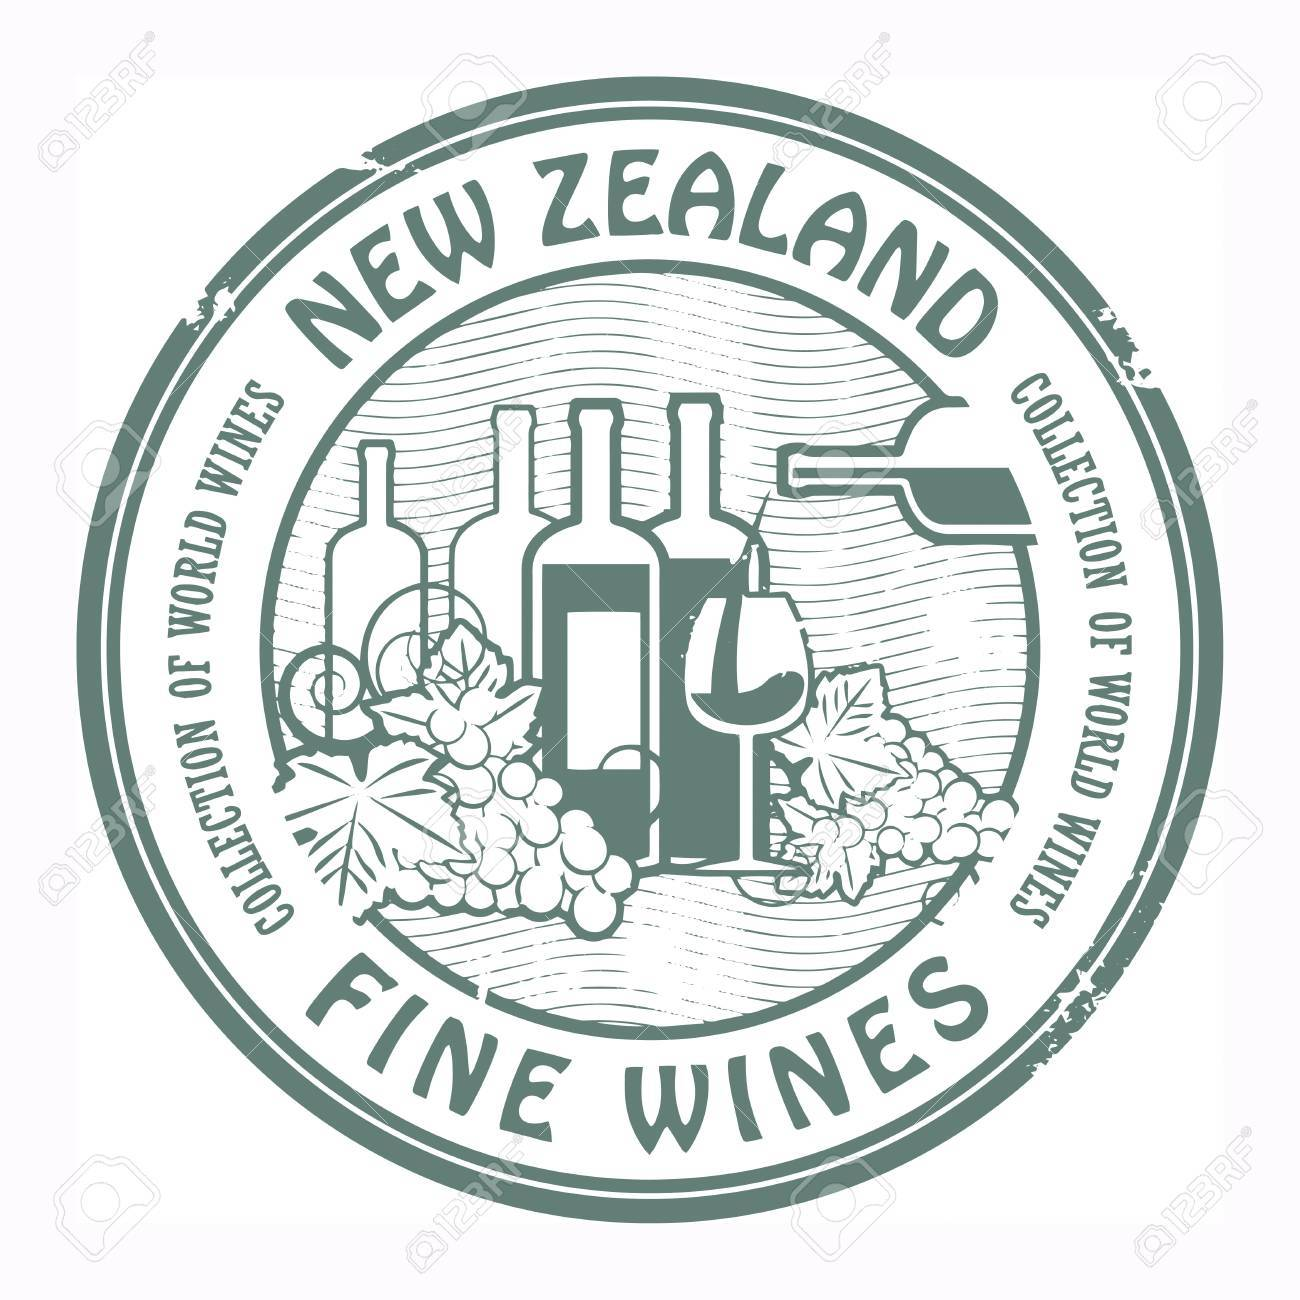 Grunge rubber stamp with words New Zealand, Fine Wines Stock Vector - 18455160